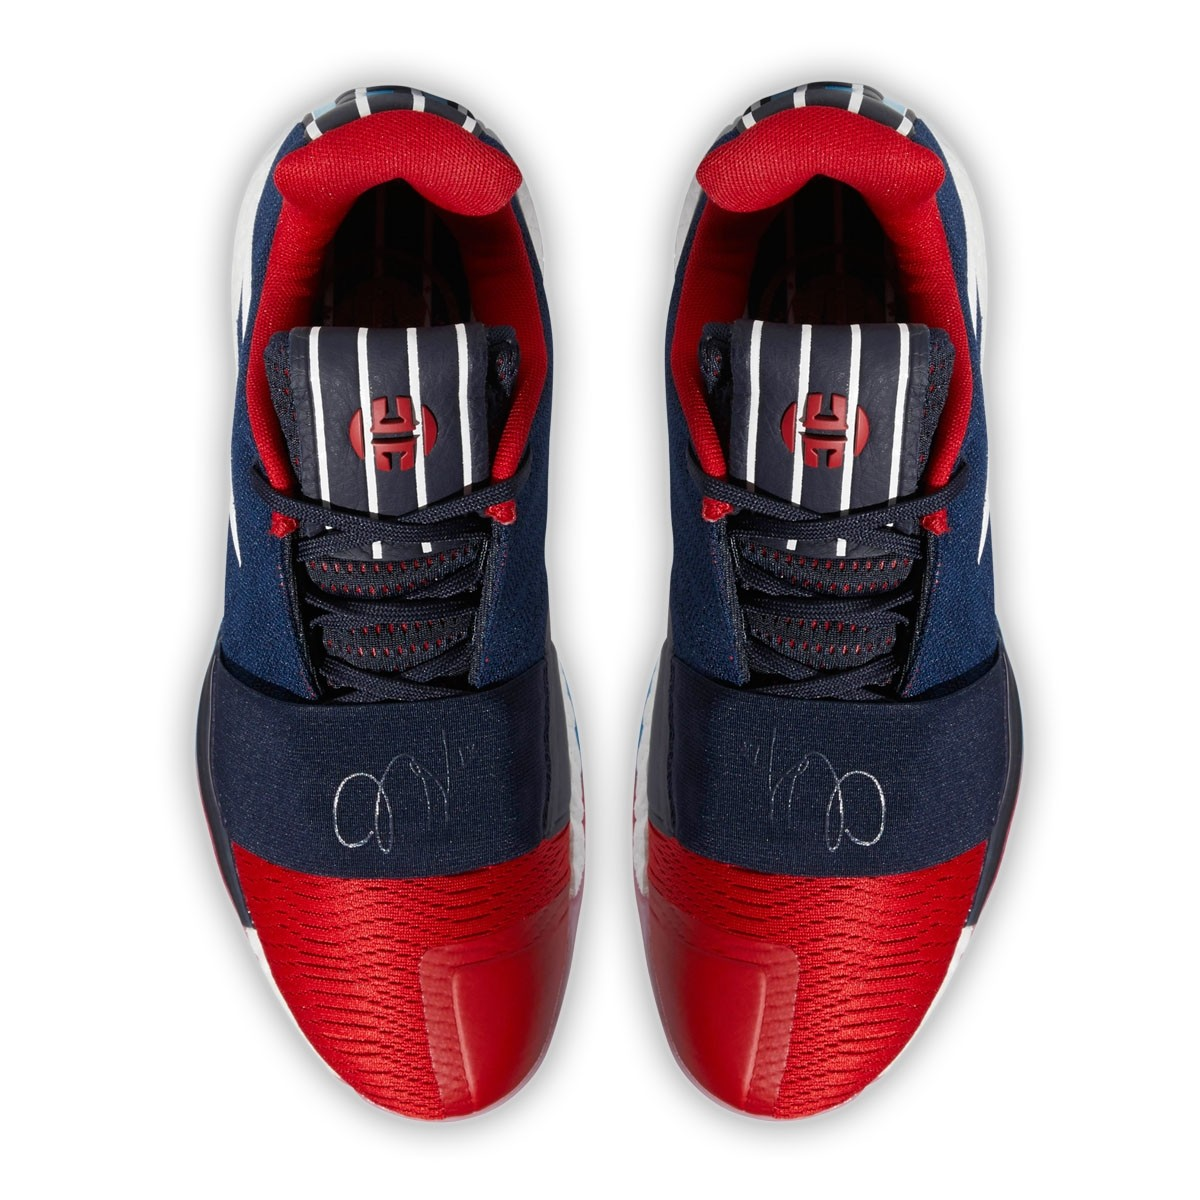 5b26c1eaee2 Buy ADIDAS Harden Vol.3  Rockets  Basketball shoes   sneakers